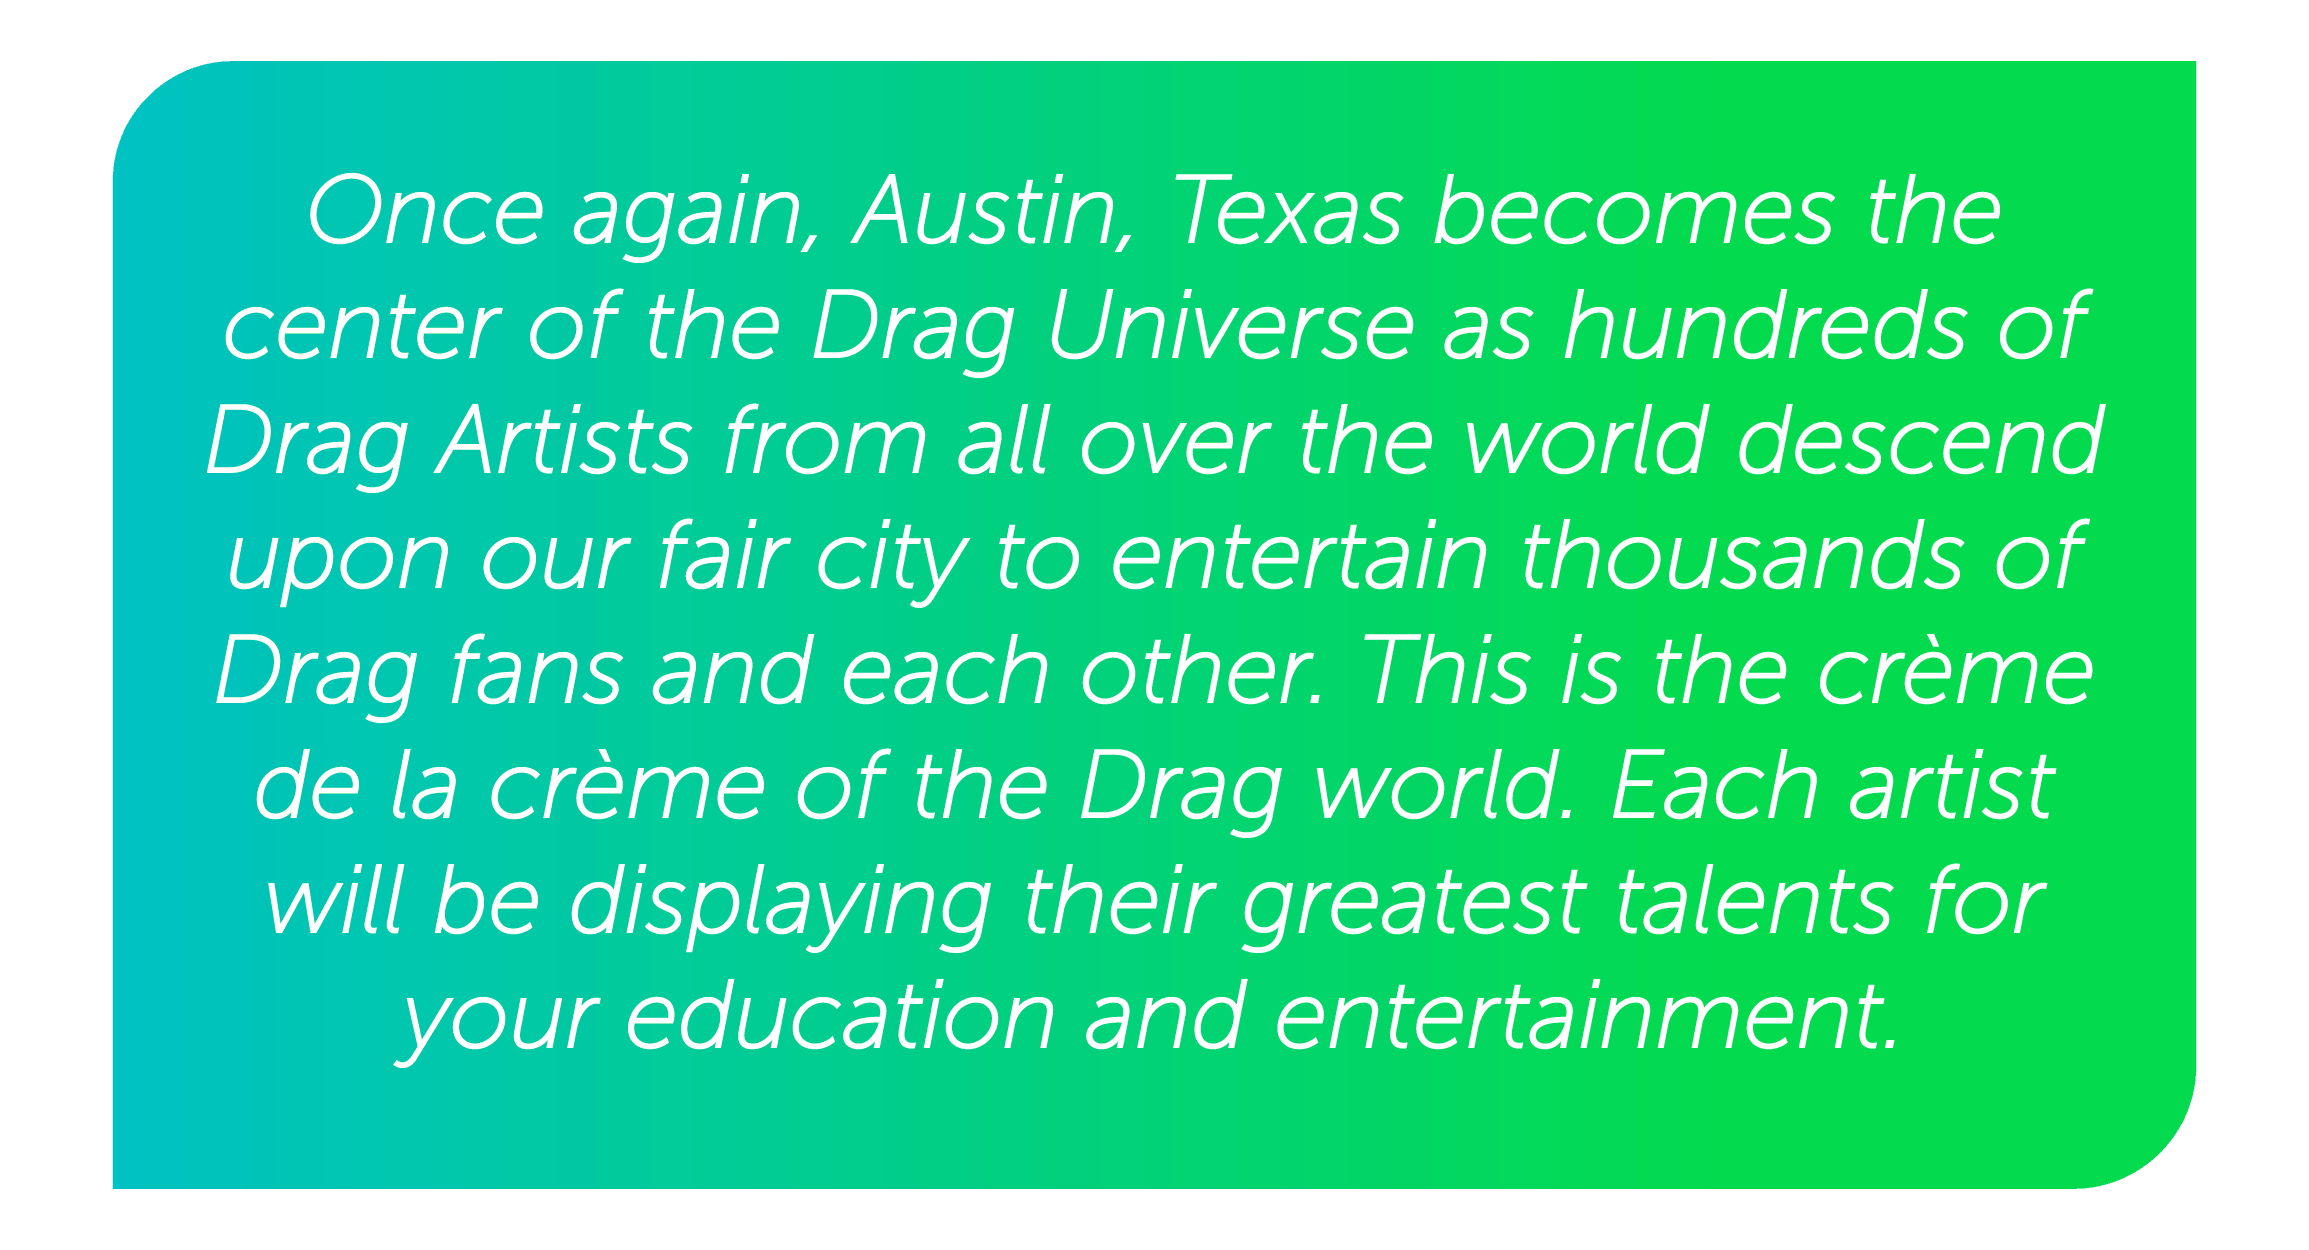 Once again, Austin, Texas becomes the center of the Drag Universe as hundreds of Drag Artists from all over the world descend upon our fair city to entertain thousands of Drag fans and each other. This is the crème de la crème of the Drag world. Each artist will be displaying their greatest talents for your education and entertainment.